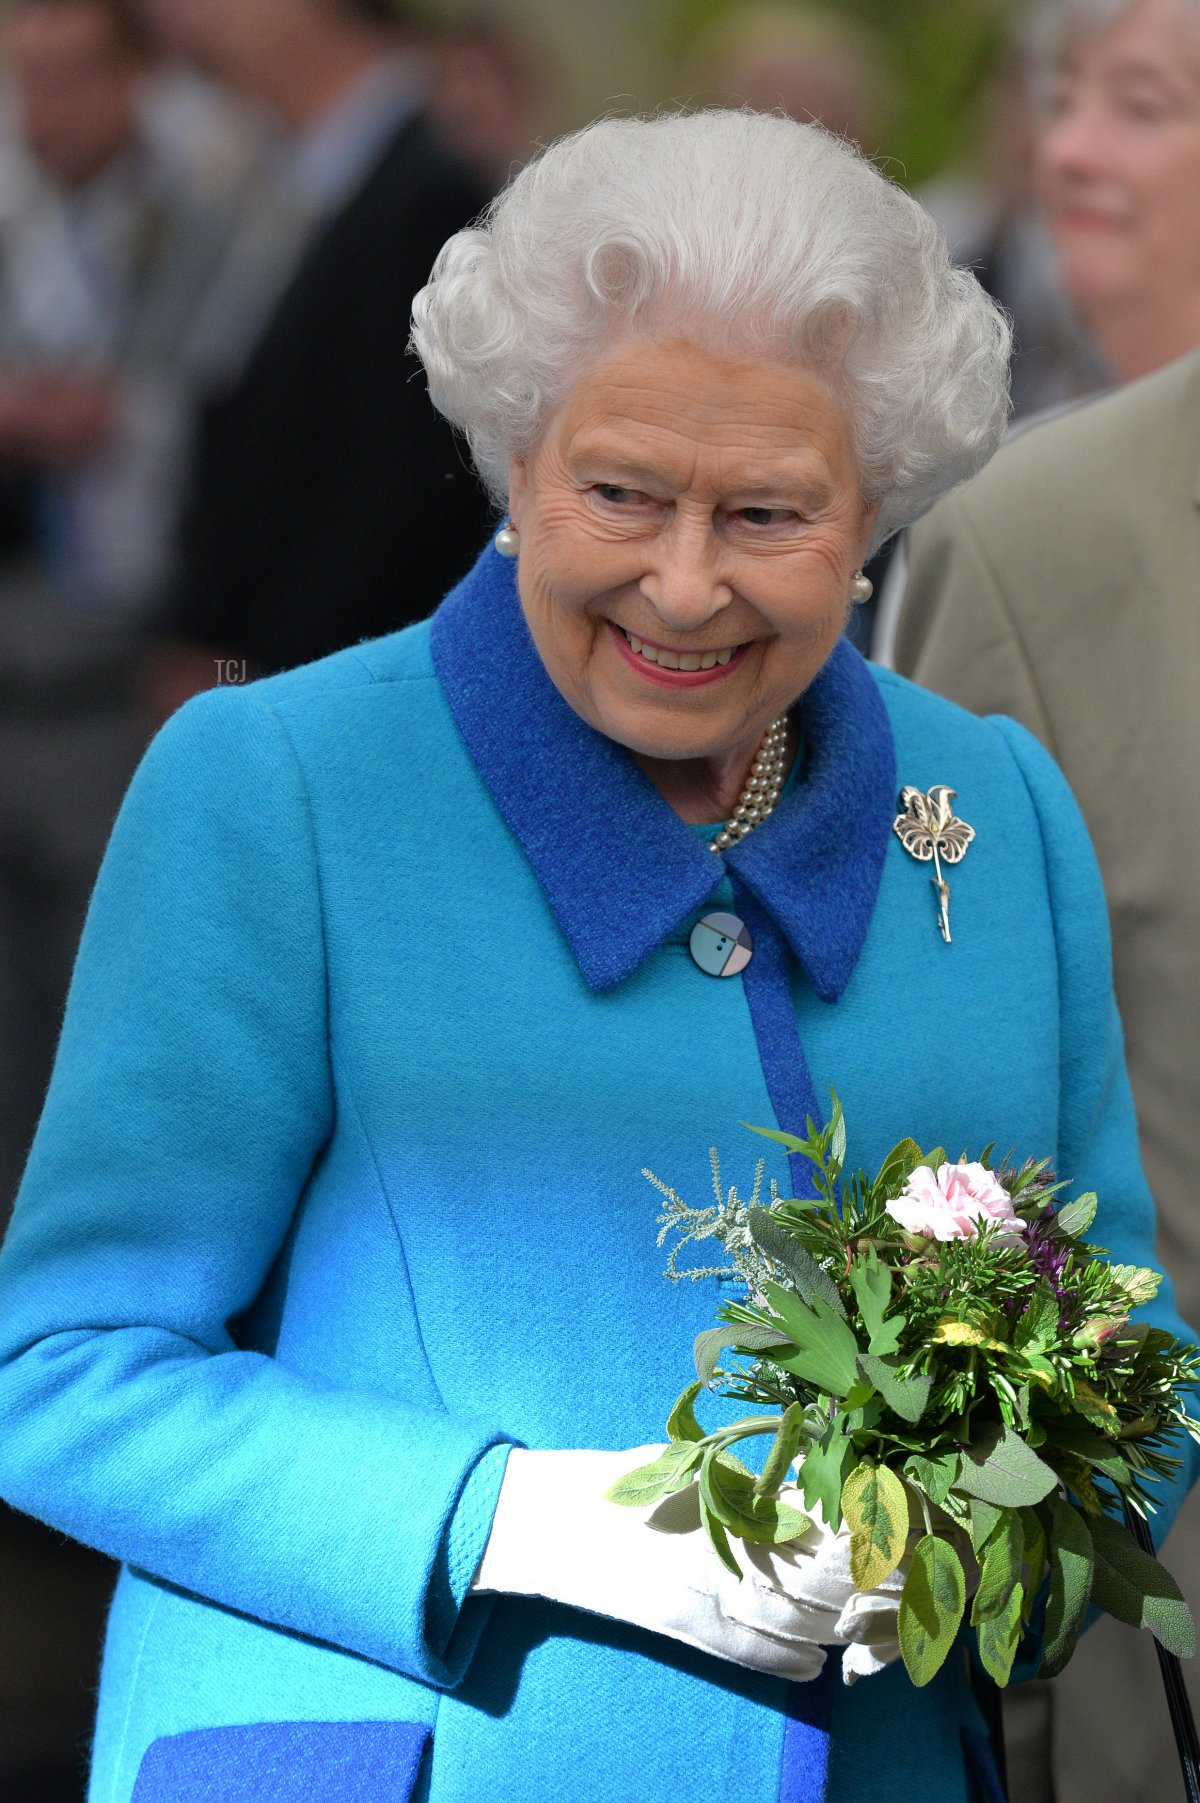 Queen Elizabeth II attends the annual Chelsea Flower show at Royal Hospital Chelsea on May 18, 2015 in London, England